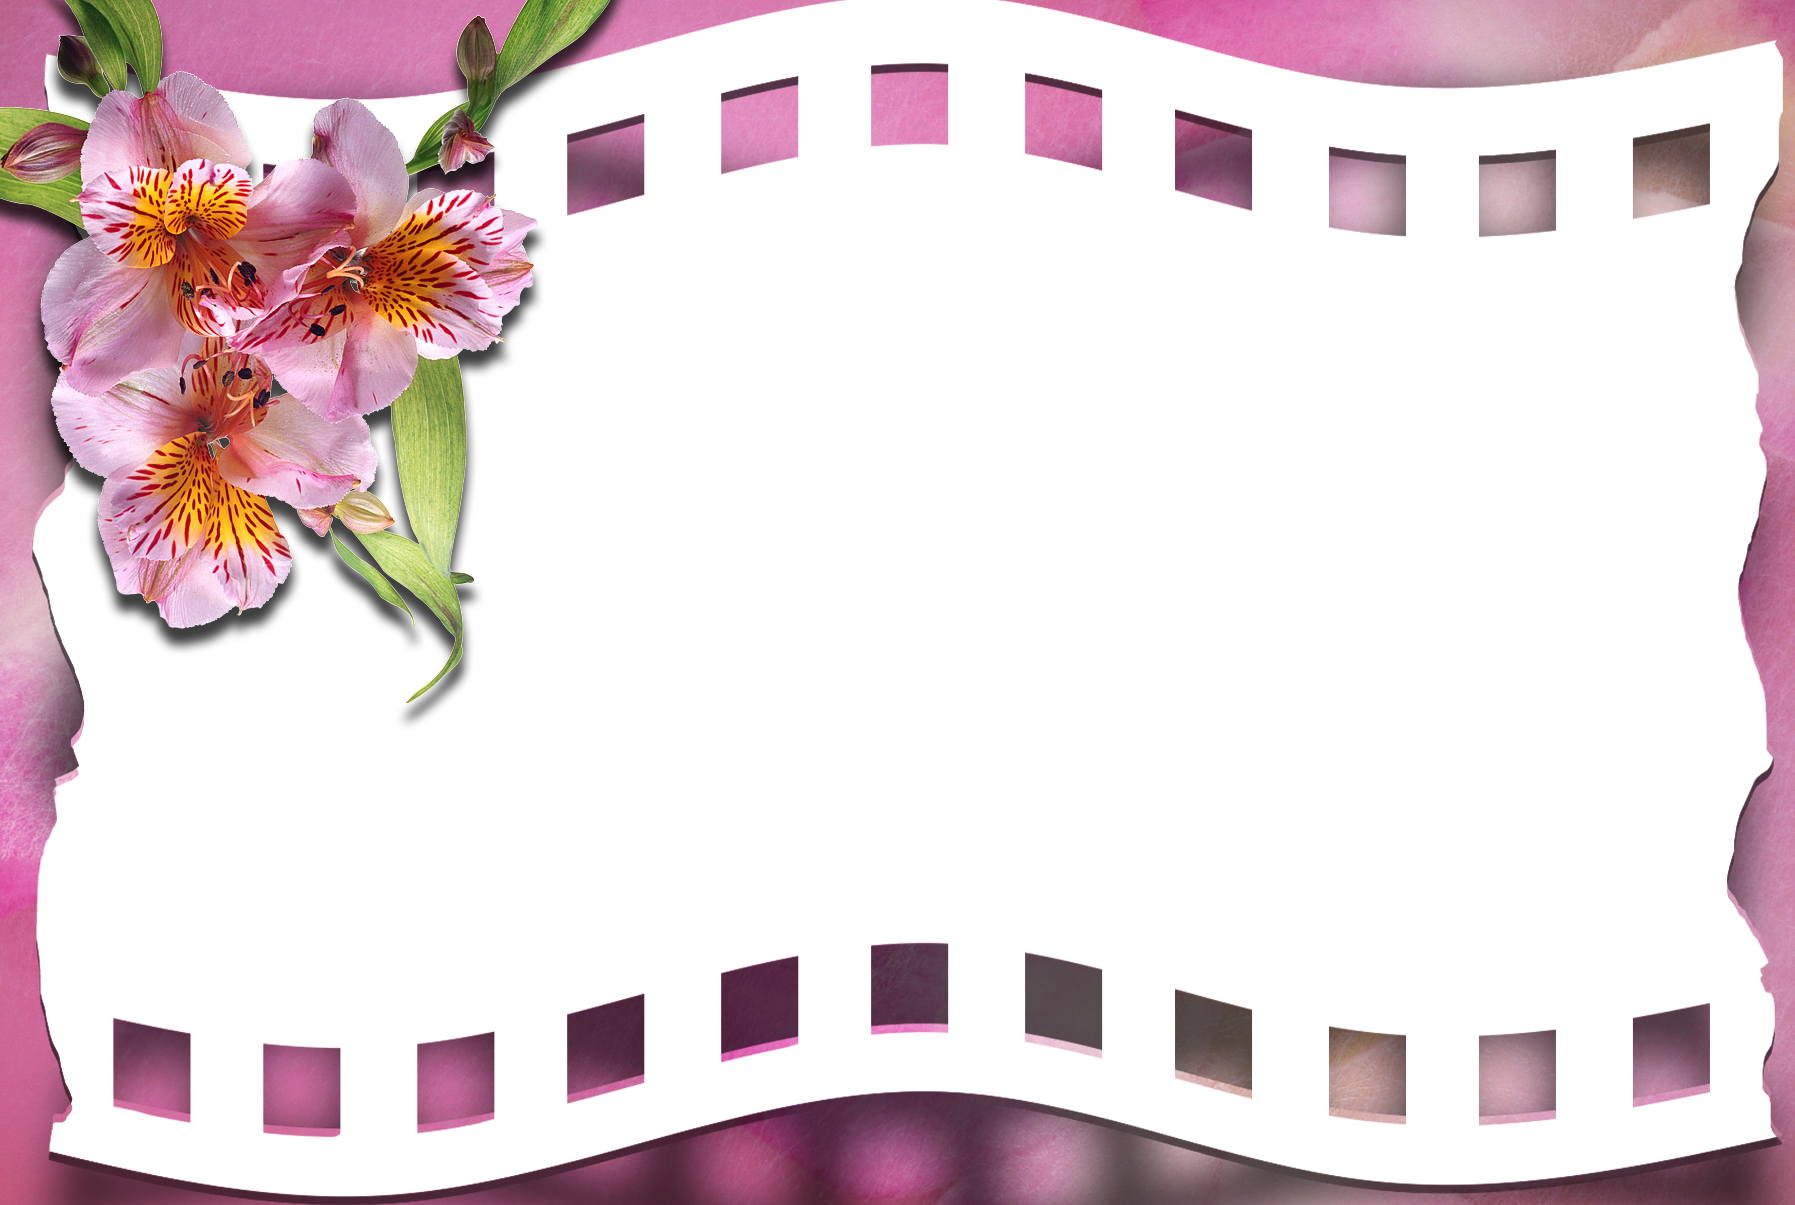 Film clipart pink. Transparent frame with flower